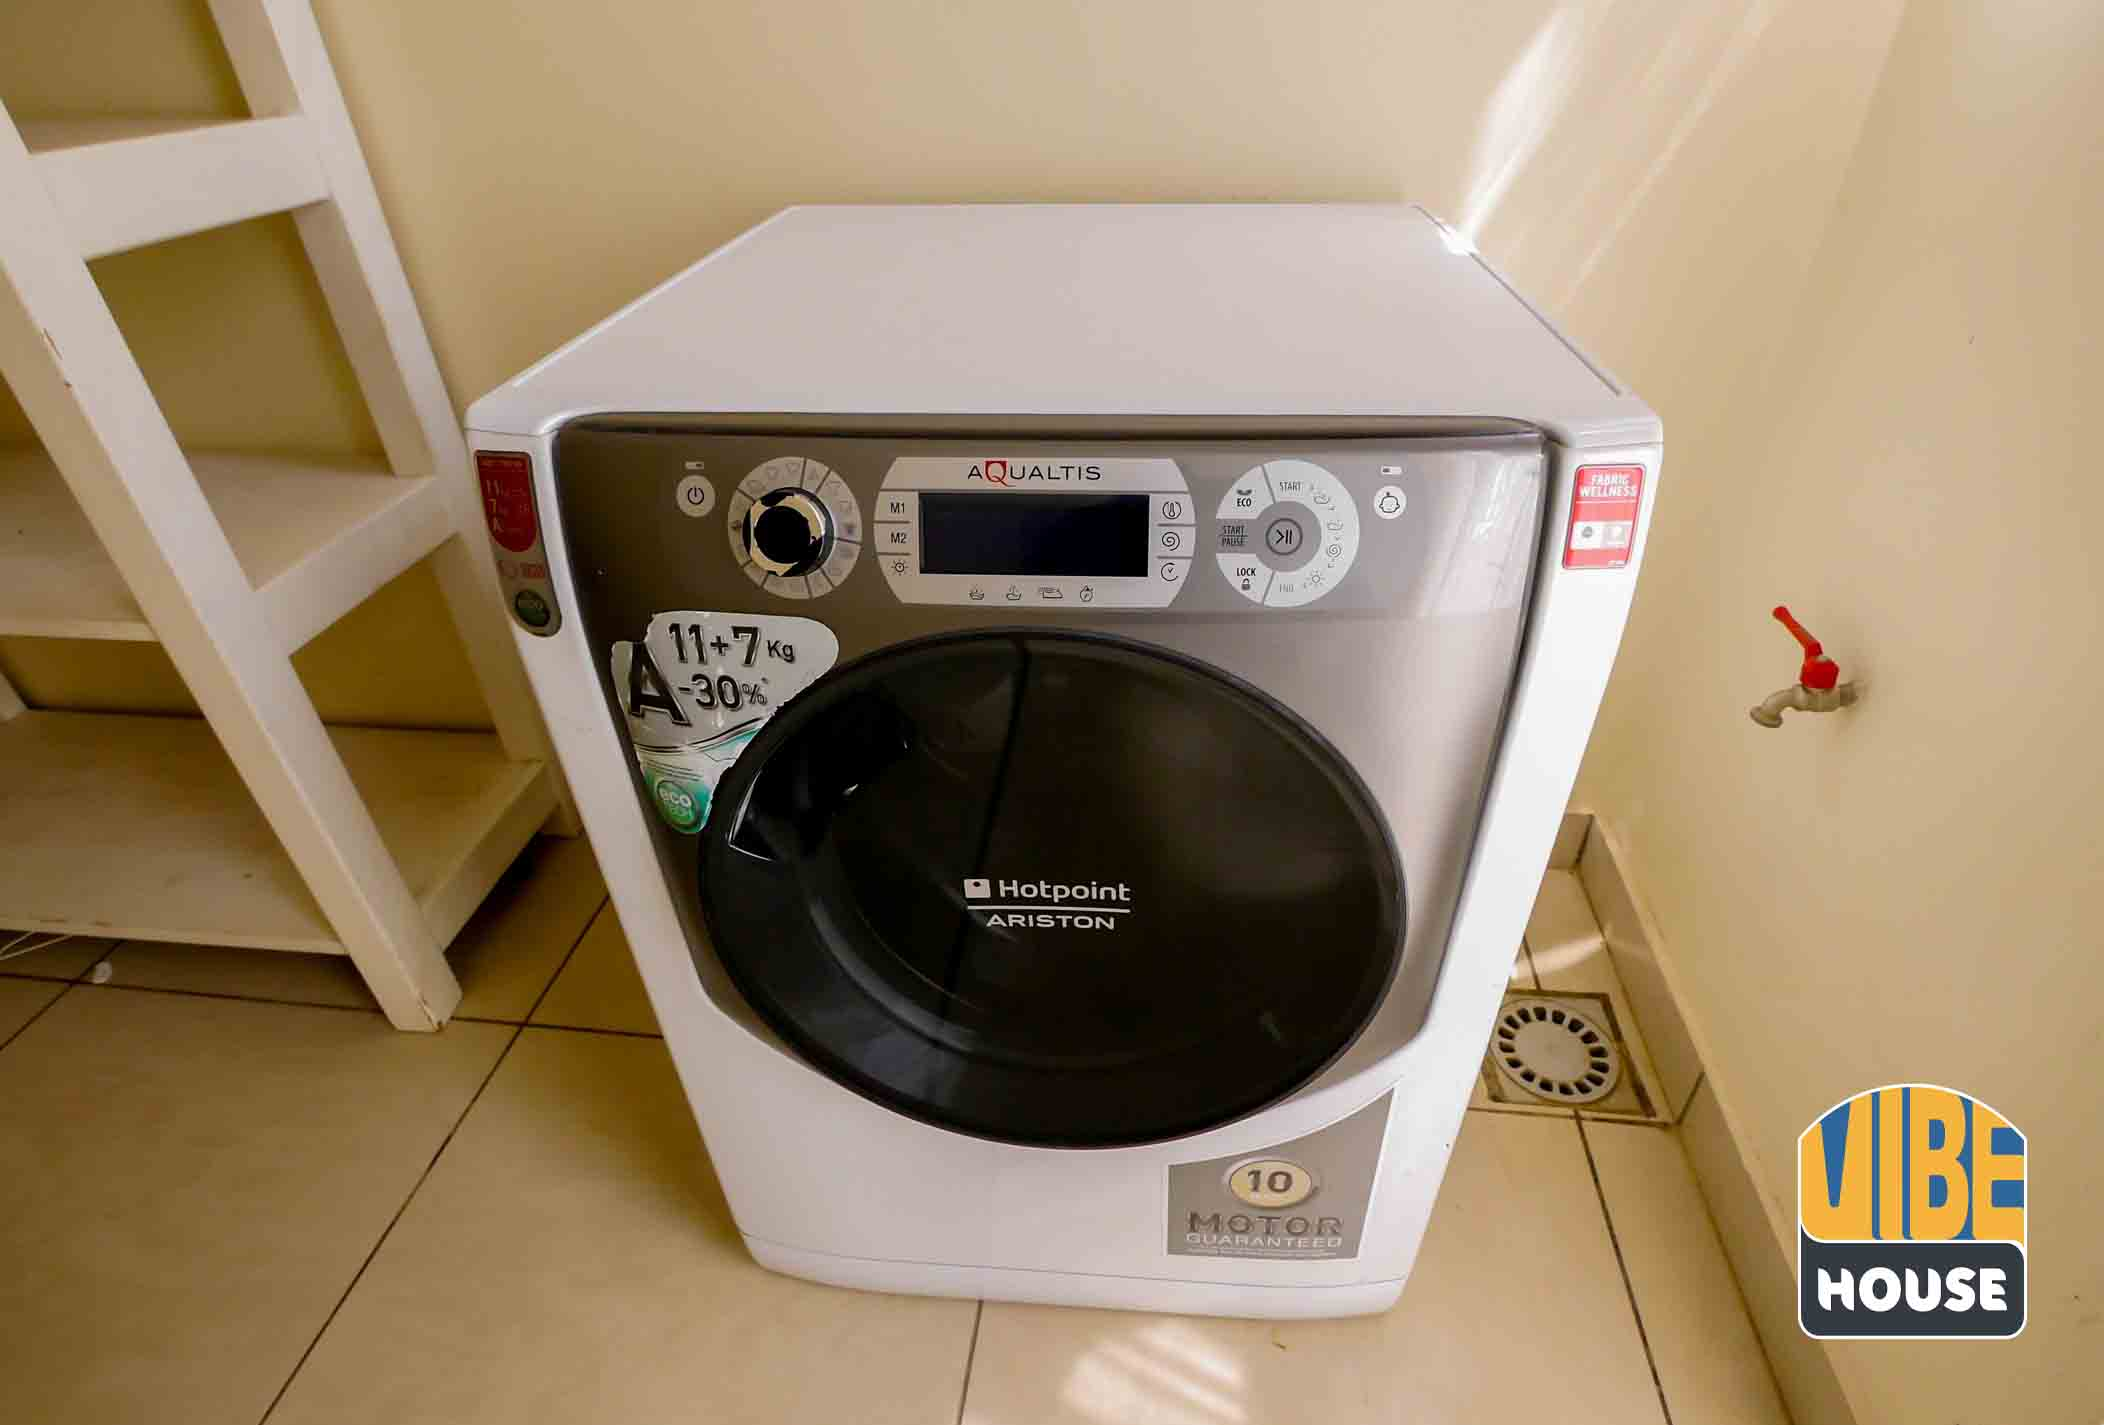 Washing machine in house for rent with pool in Kibagabaga, Kigali